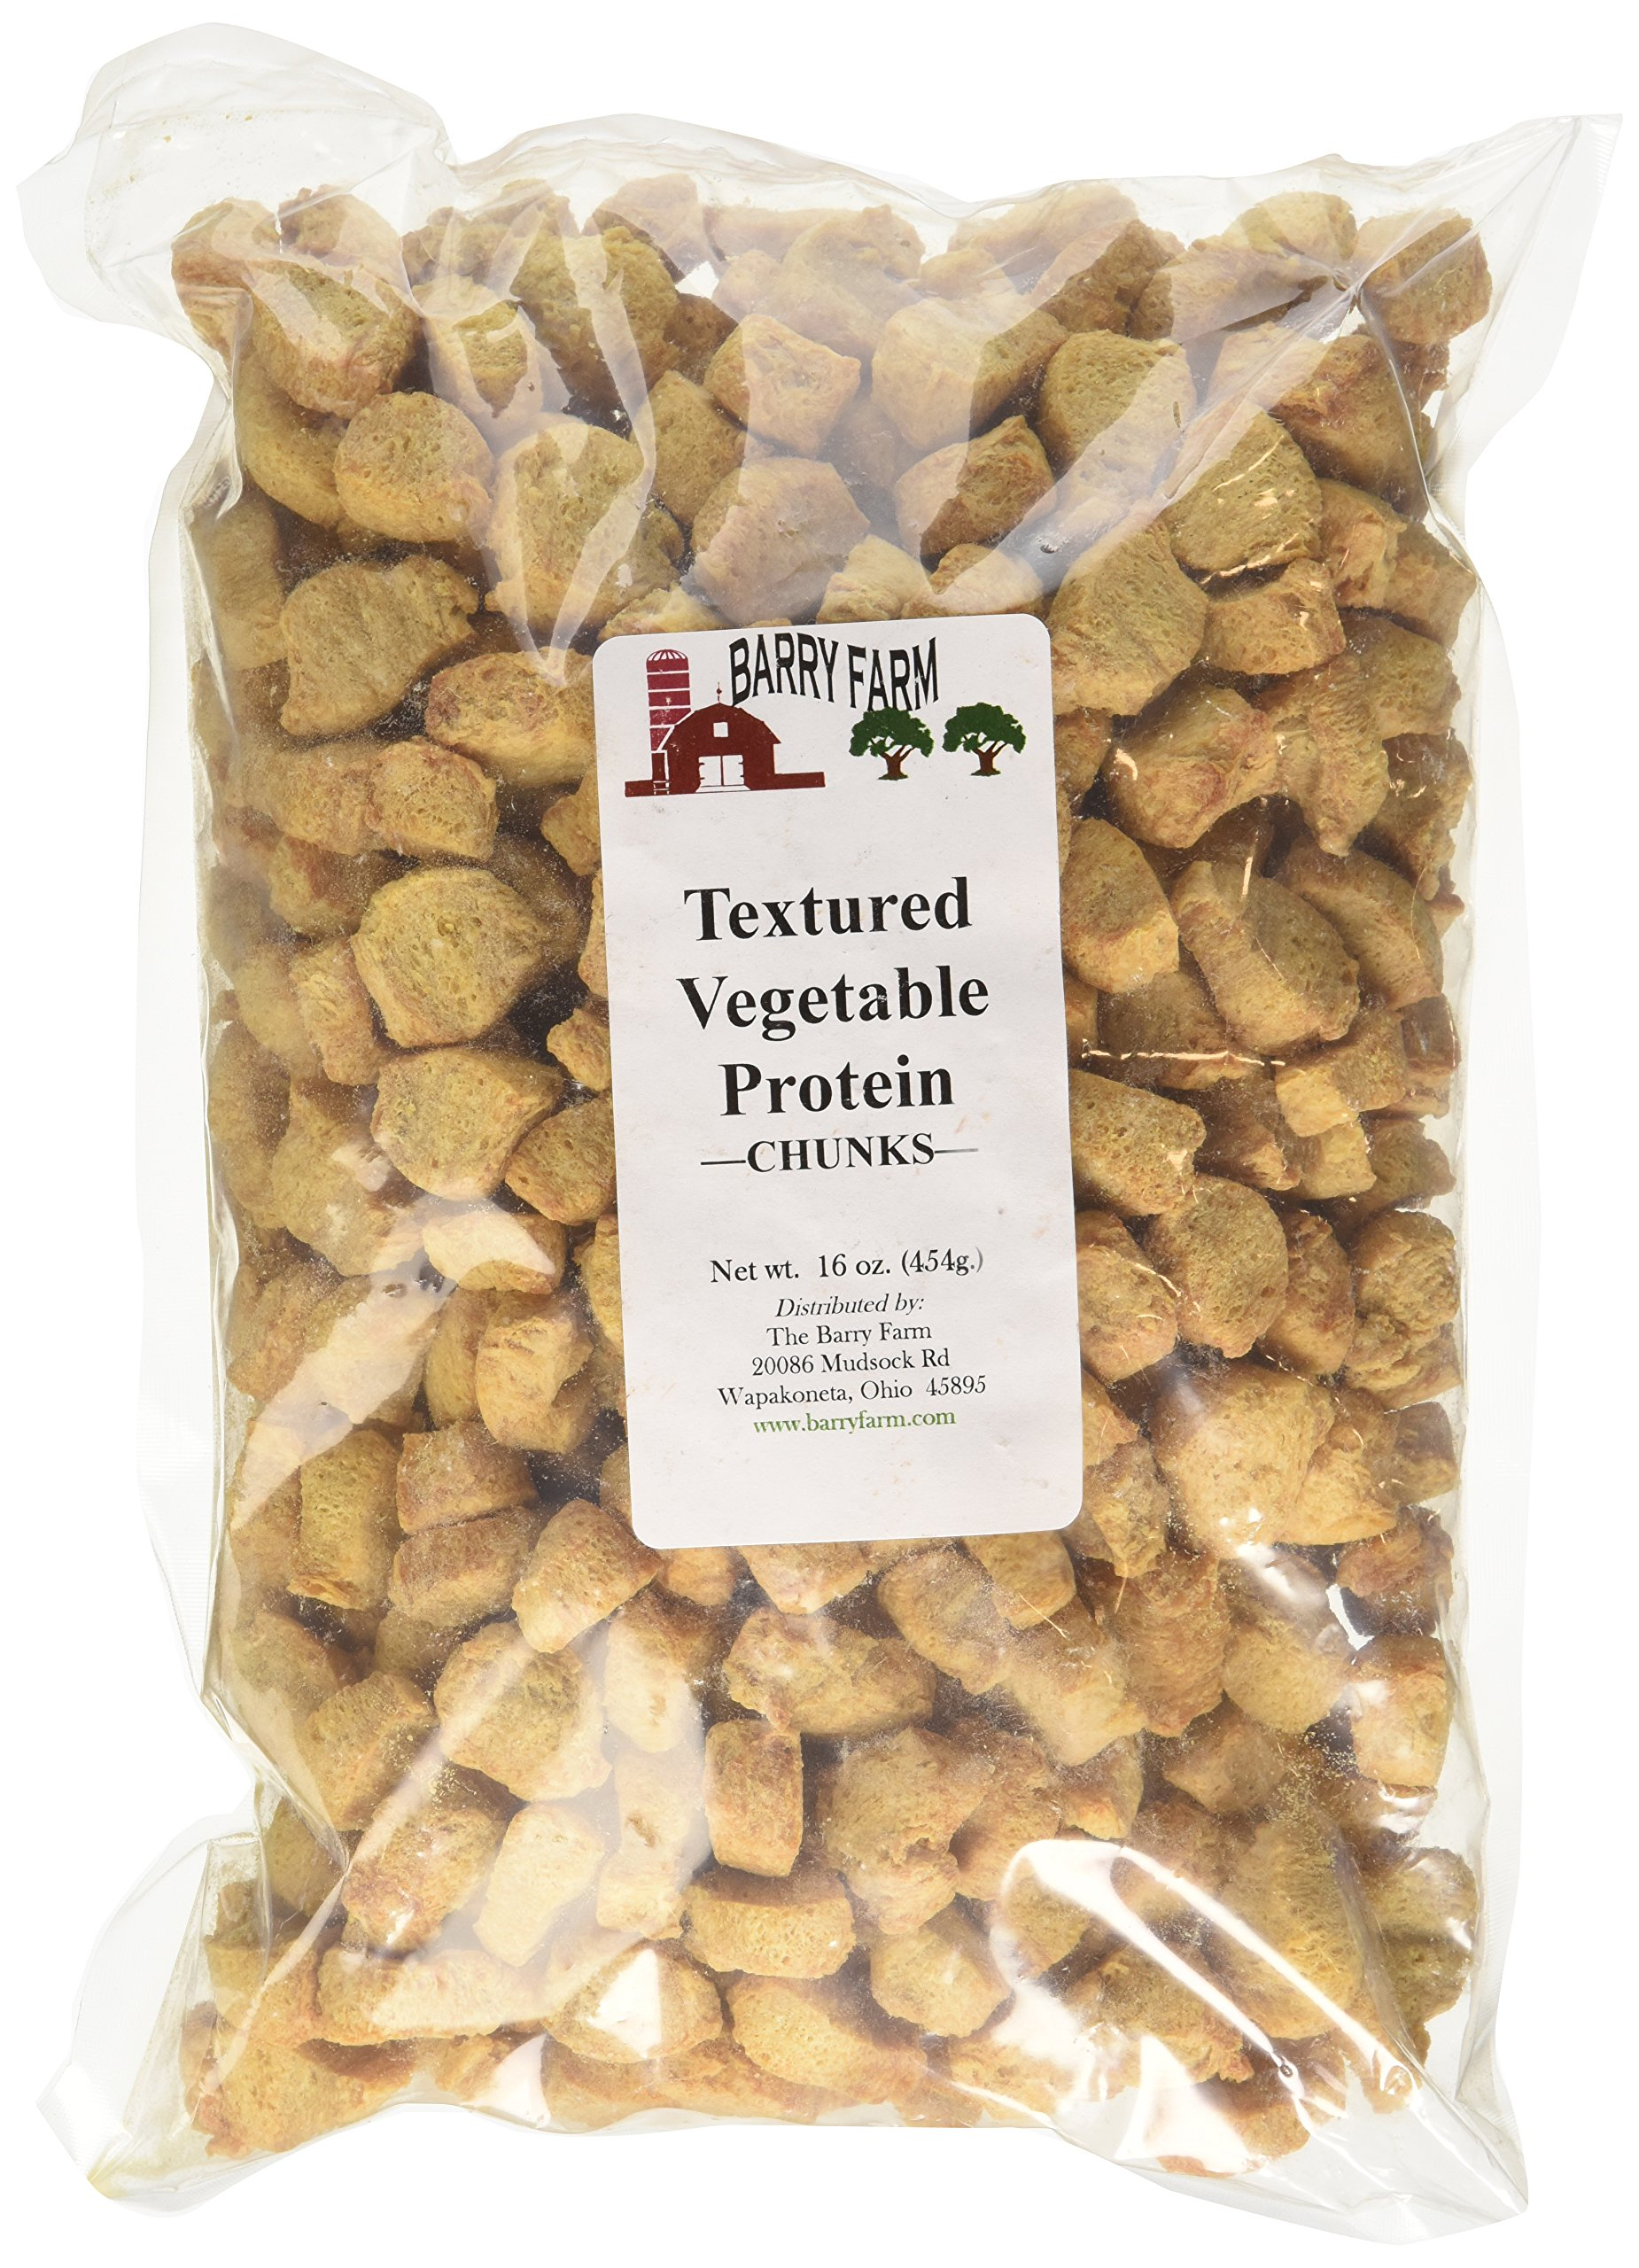 Textured Vegetable Protein Chunks, 1 lb. by Barry Farm